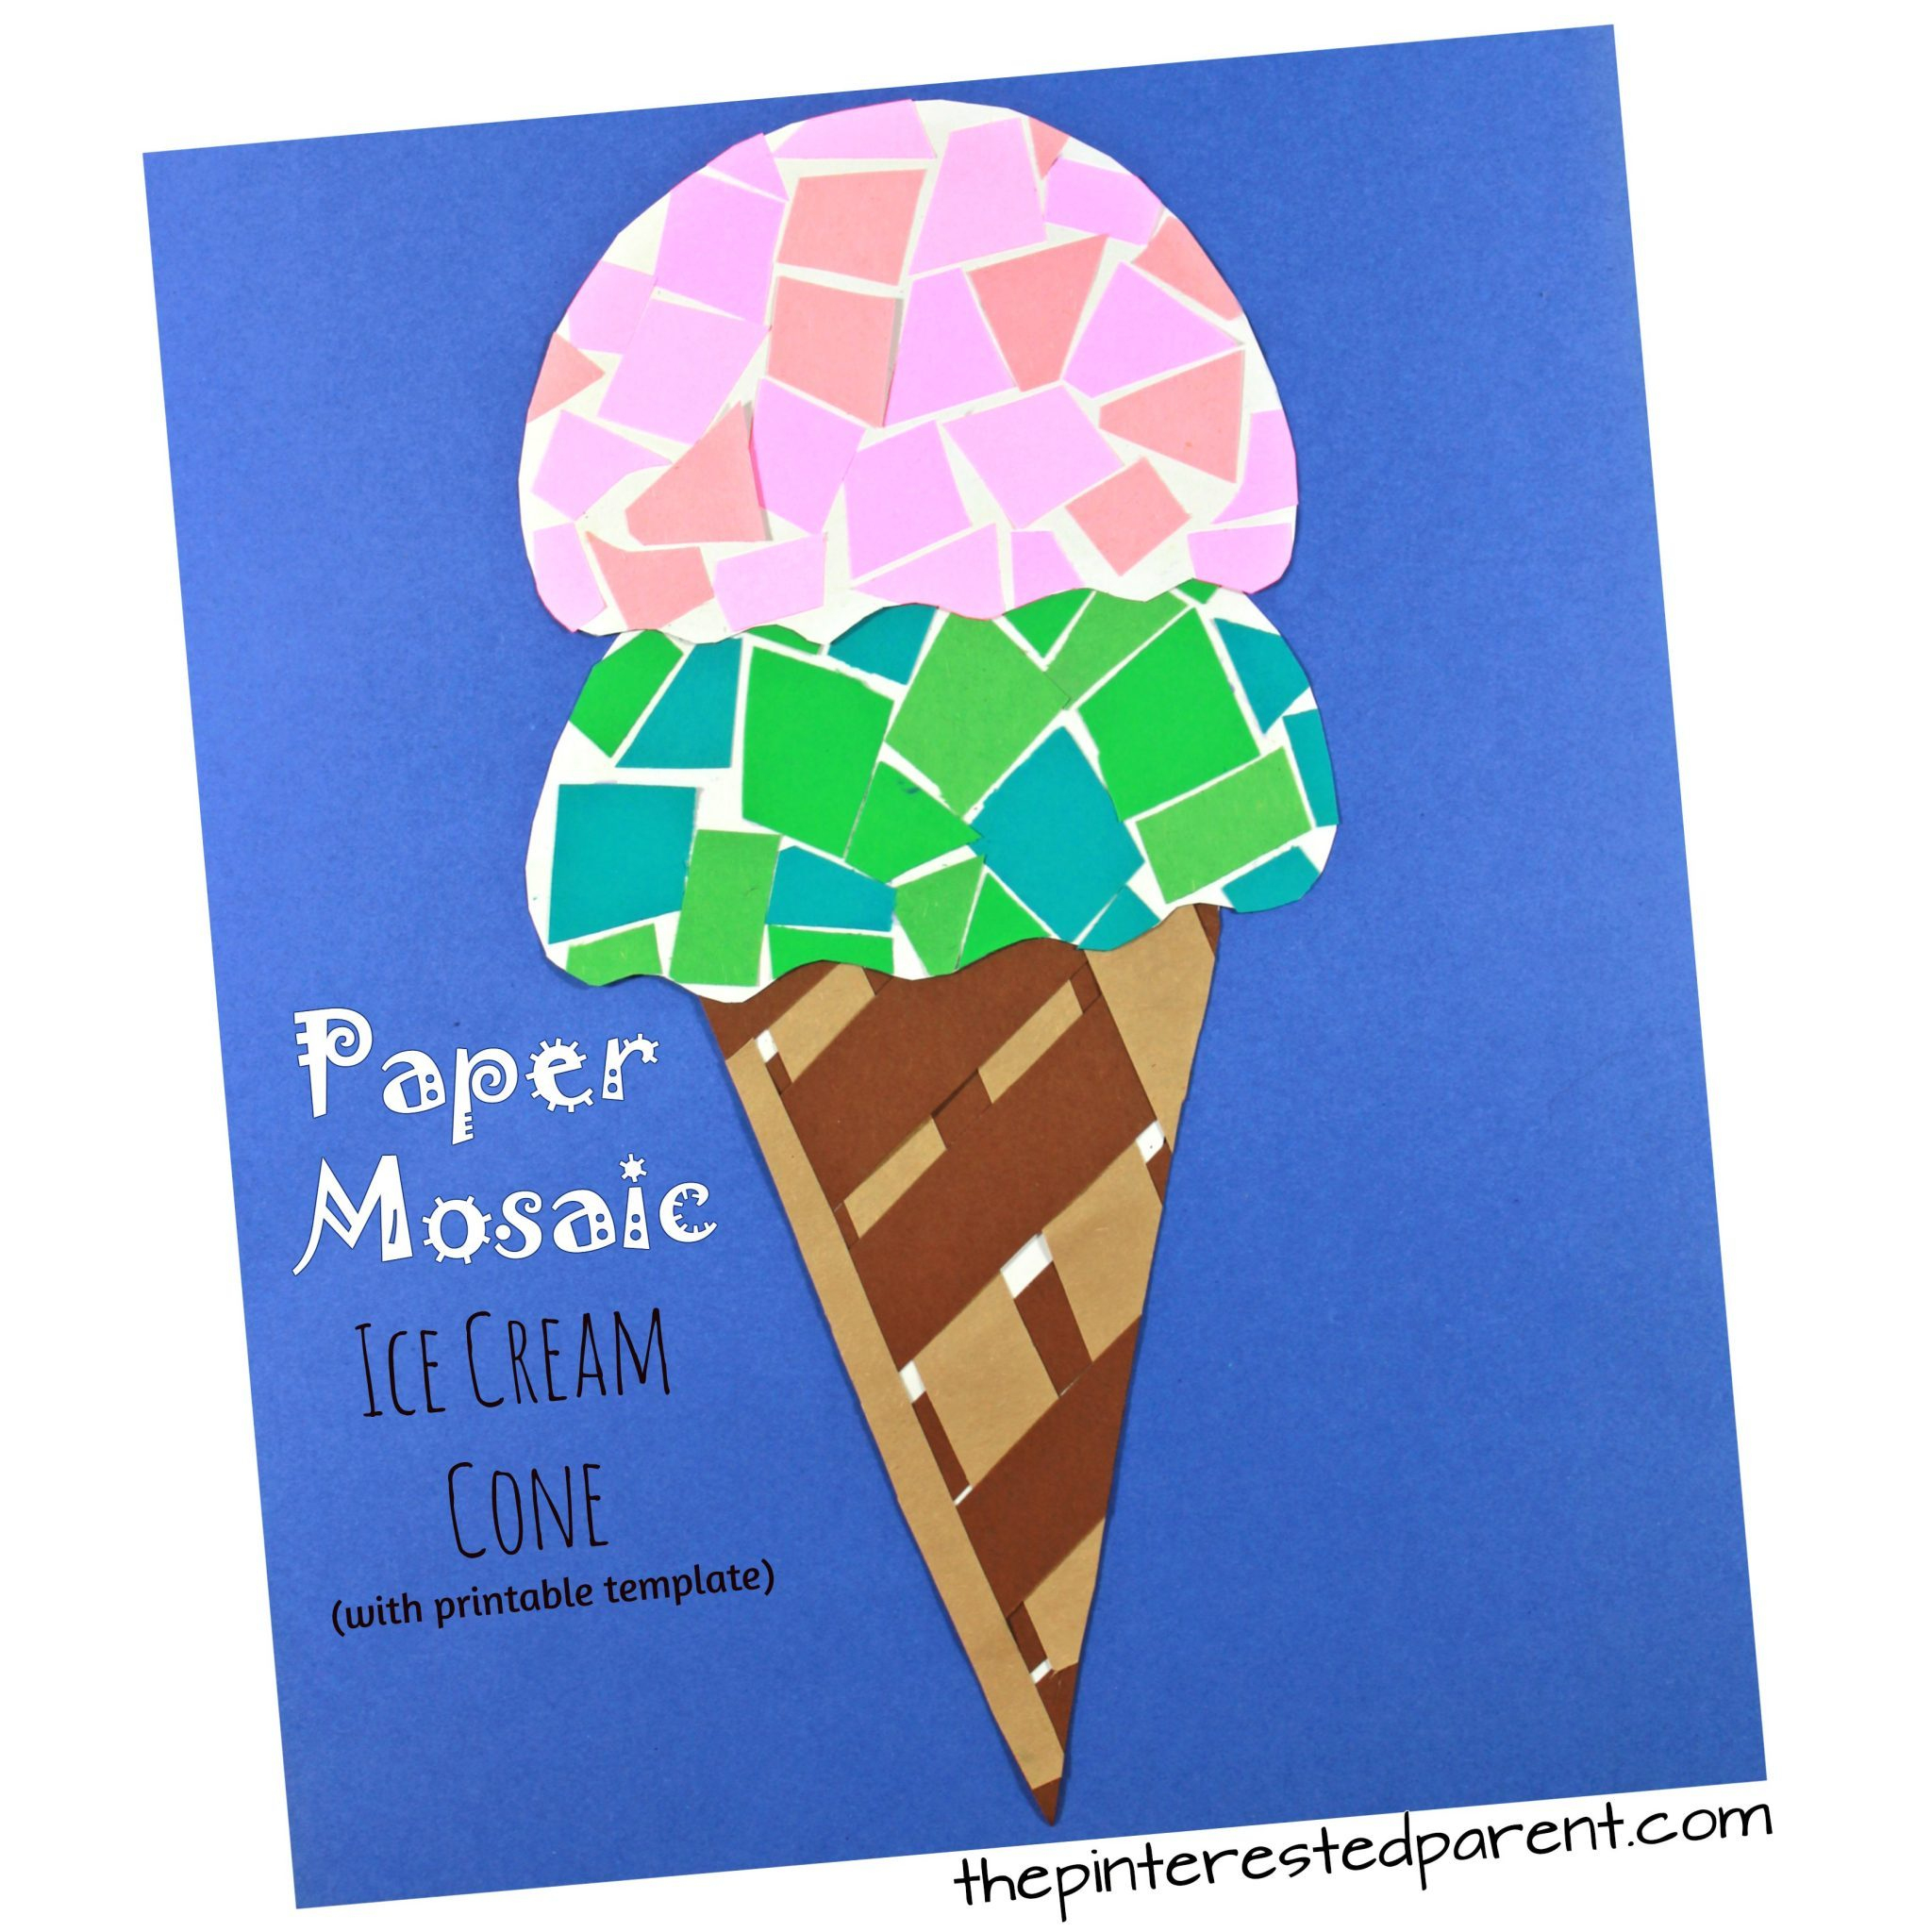 Printable Paper Mosaic Ice Cream Cone – The Pinterested Parent - Ice Cream Cone Template Free Printable